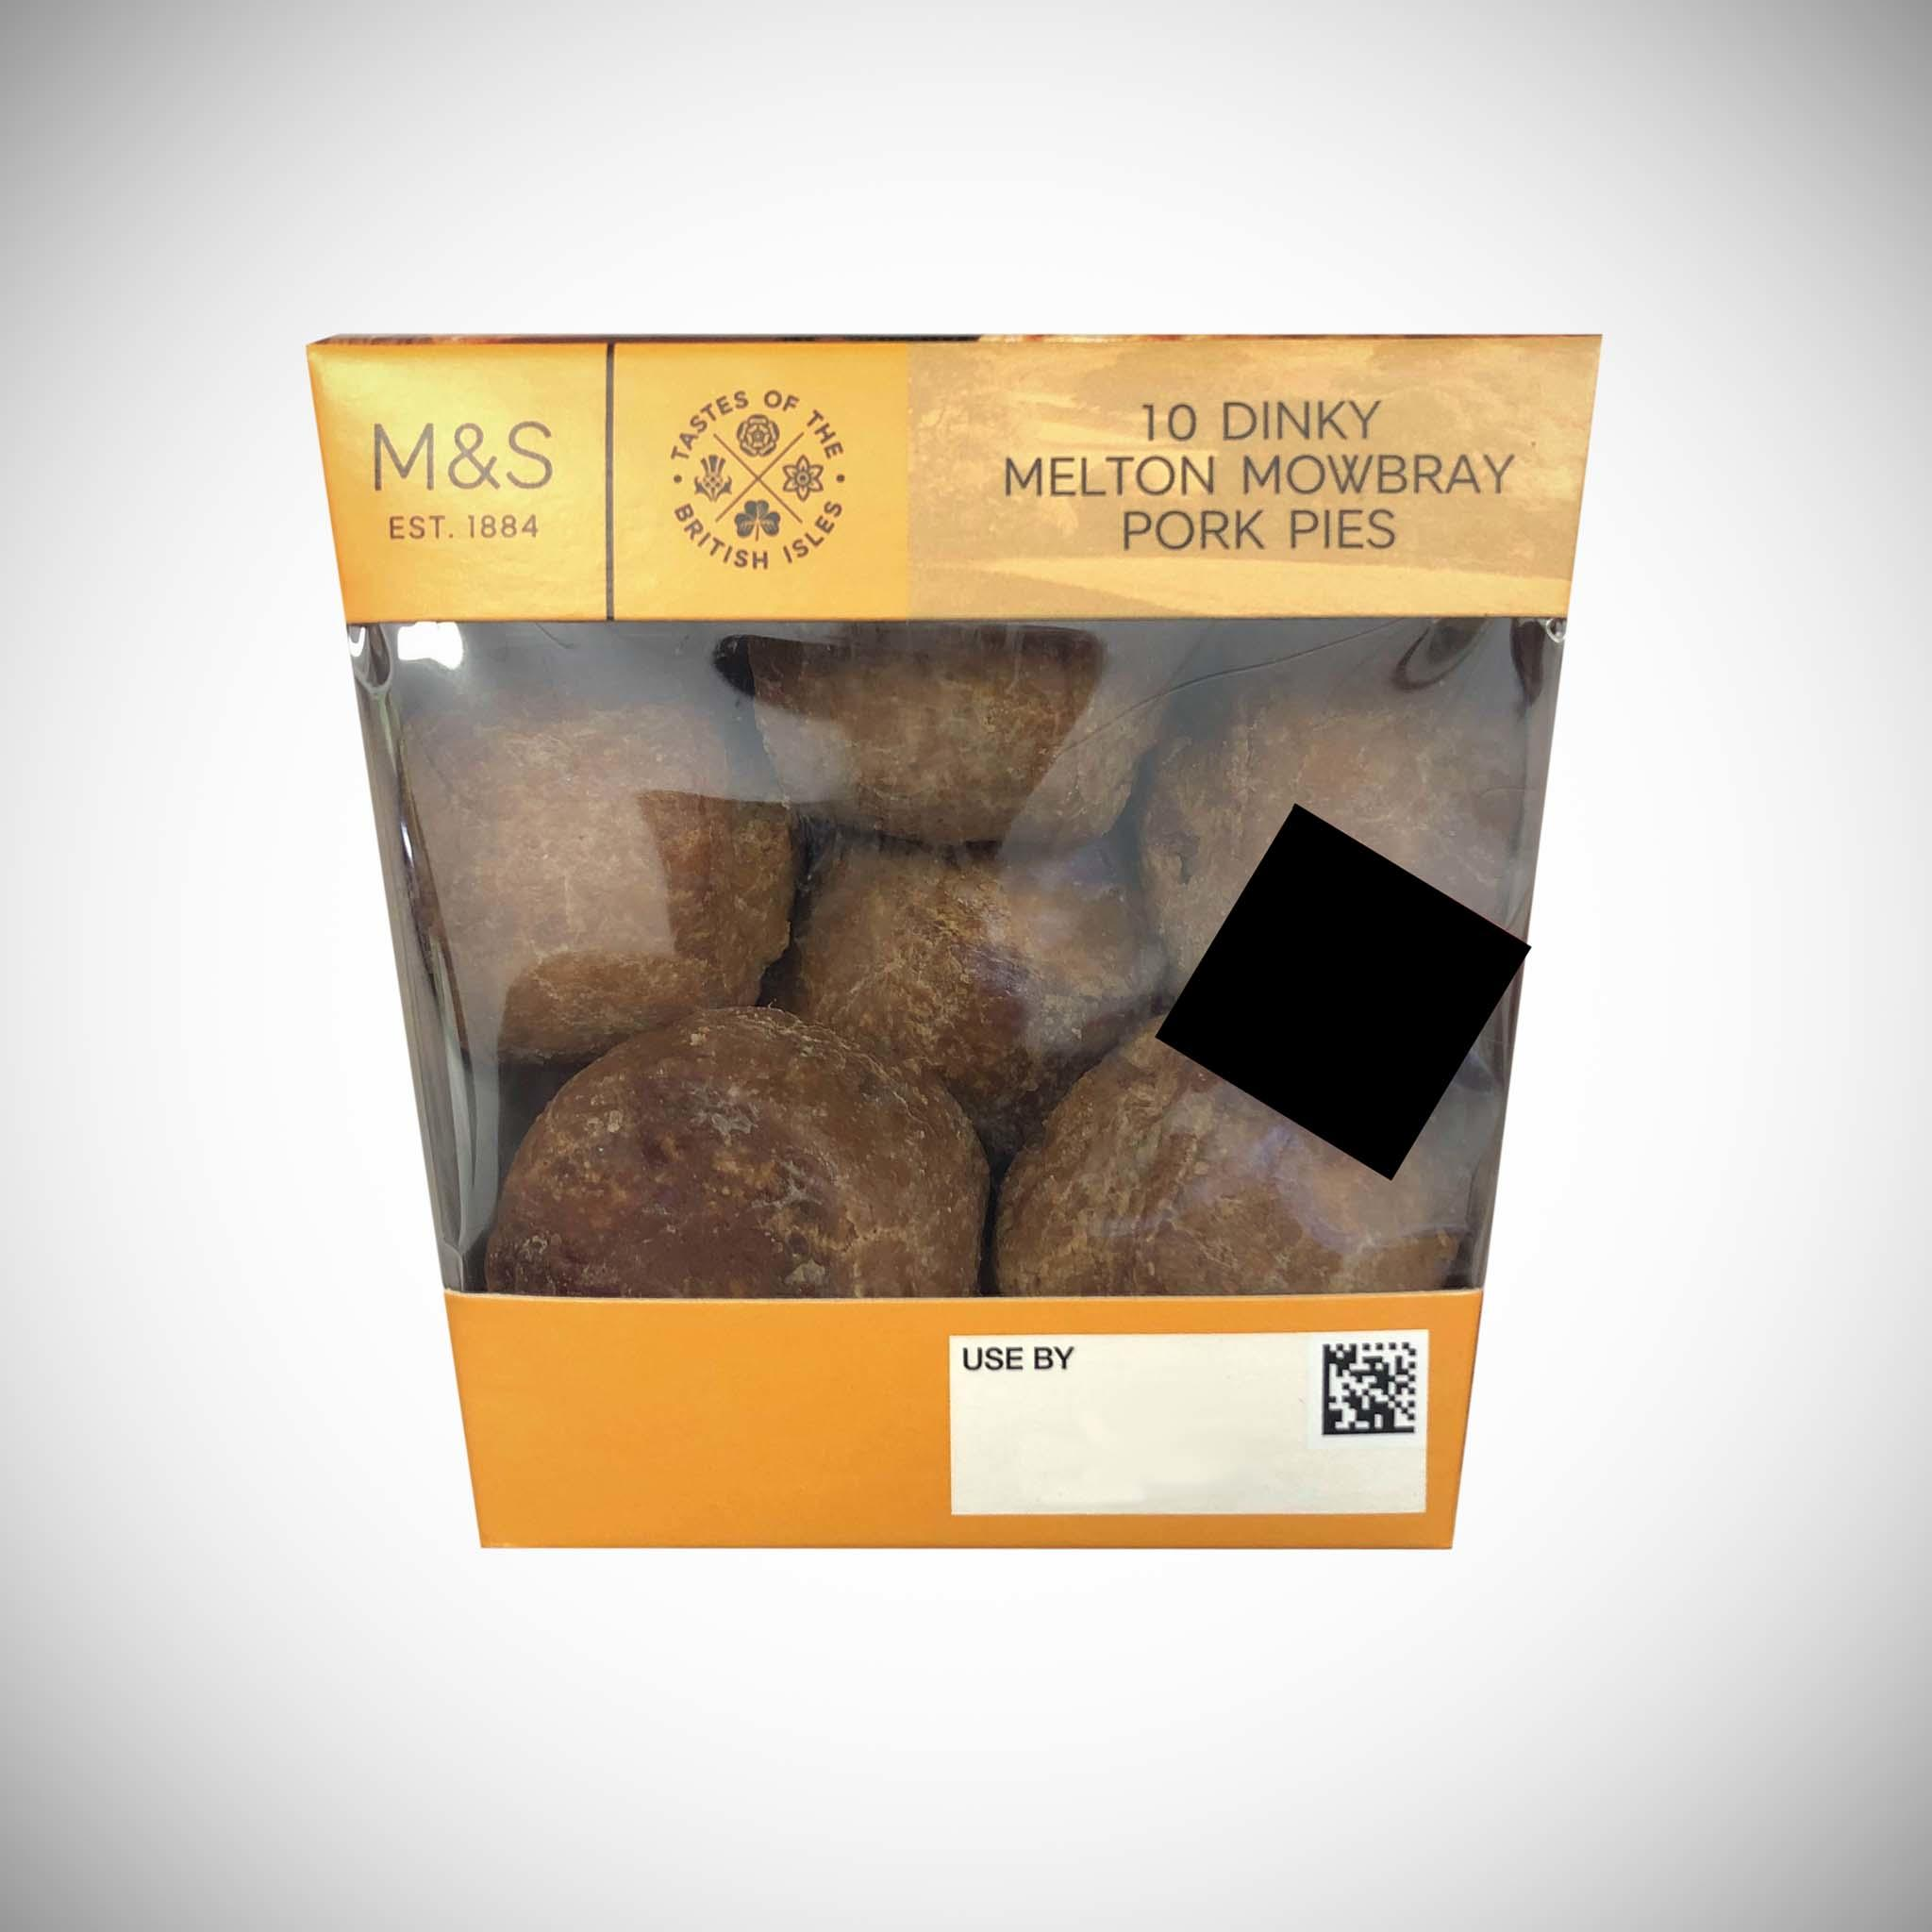 Dinky Melton Mowbray Pork Pies